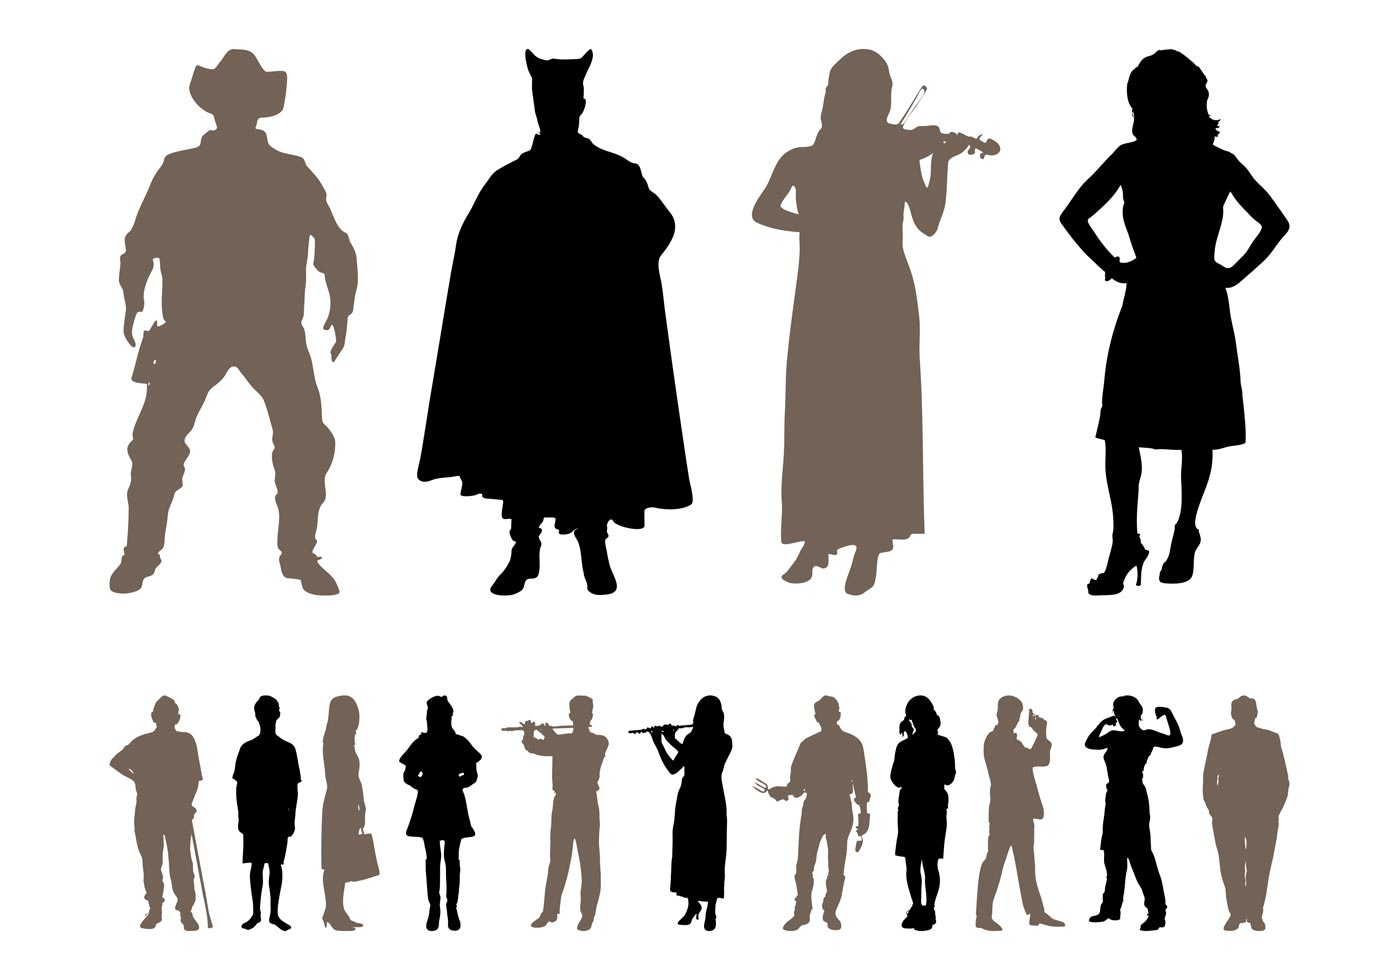 Silhouette Paintings Of People People Silhouettes Designs Pack Download Free Vector Art